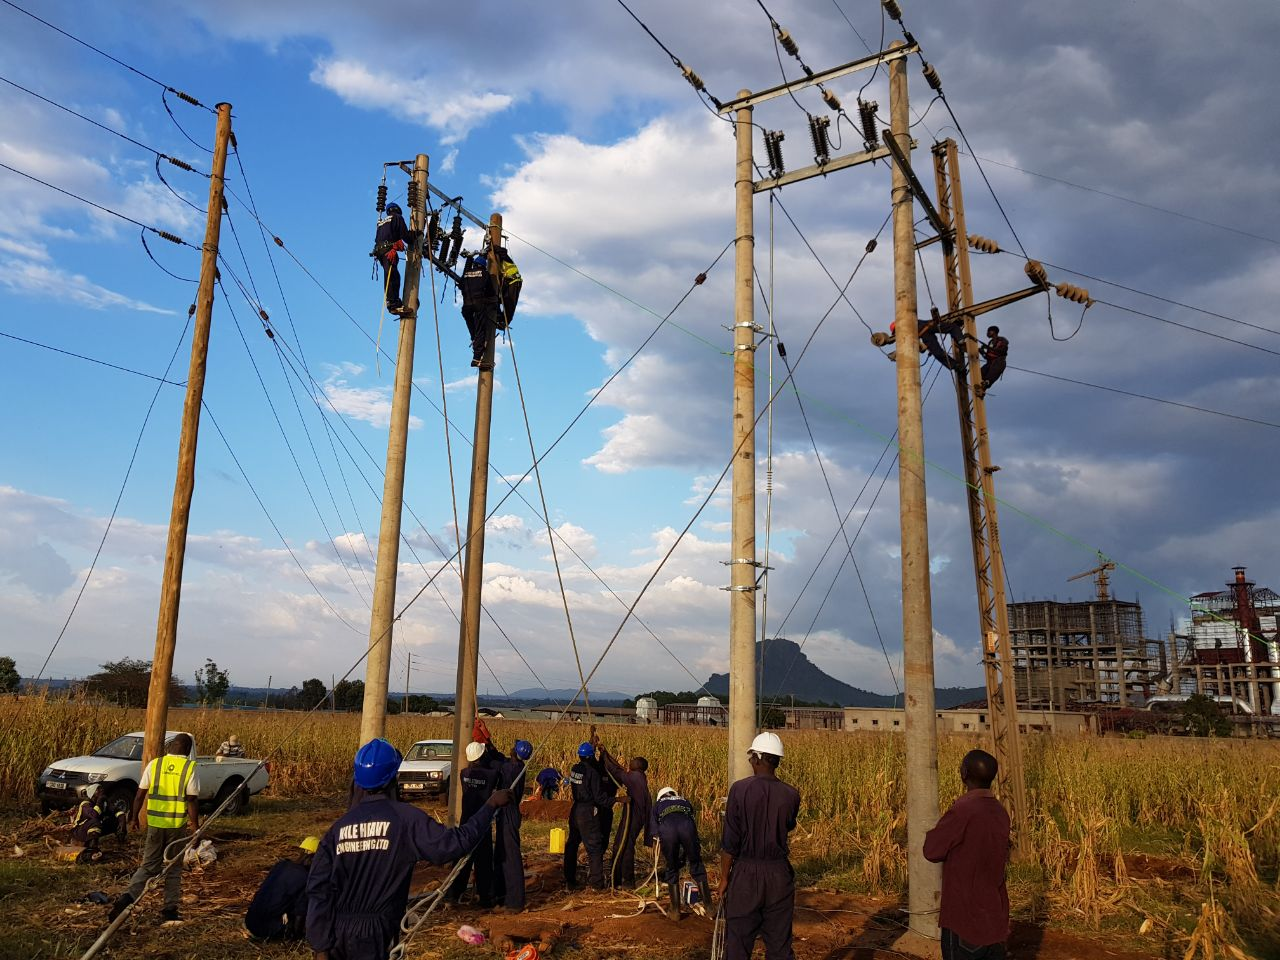 Staff of Uganda Electricity Transmission Company Limited (UETCL) mount a power line. (PHOTO/File)